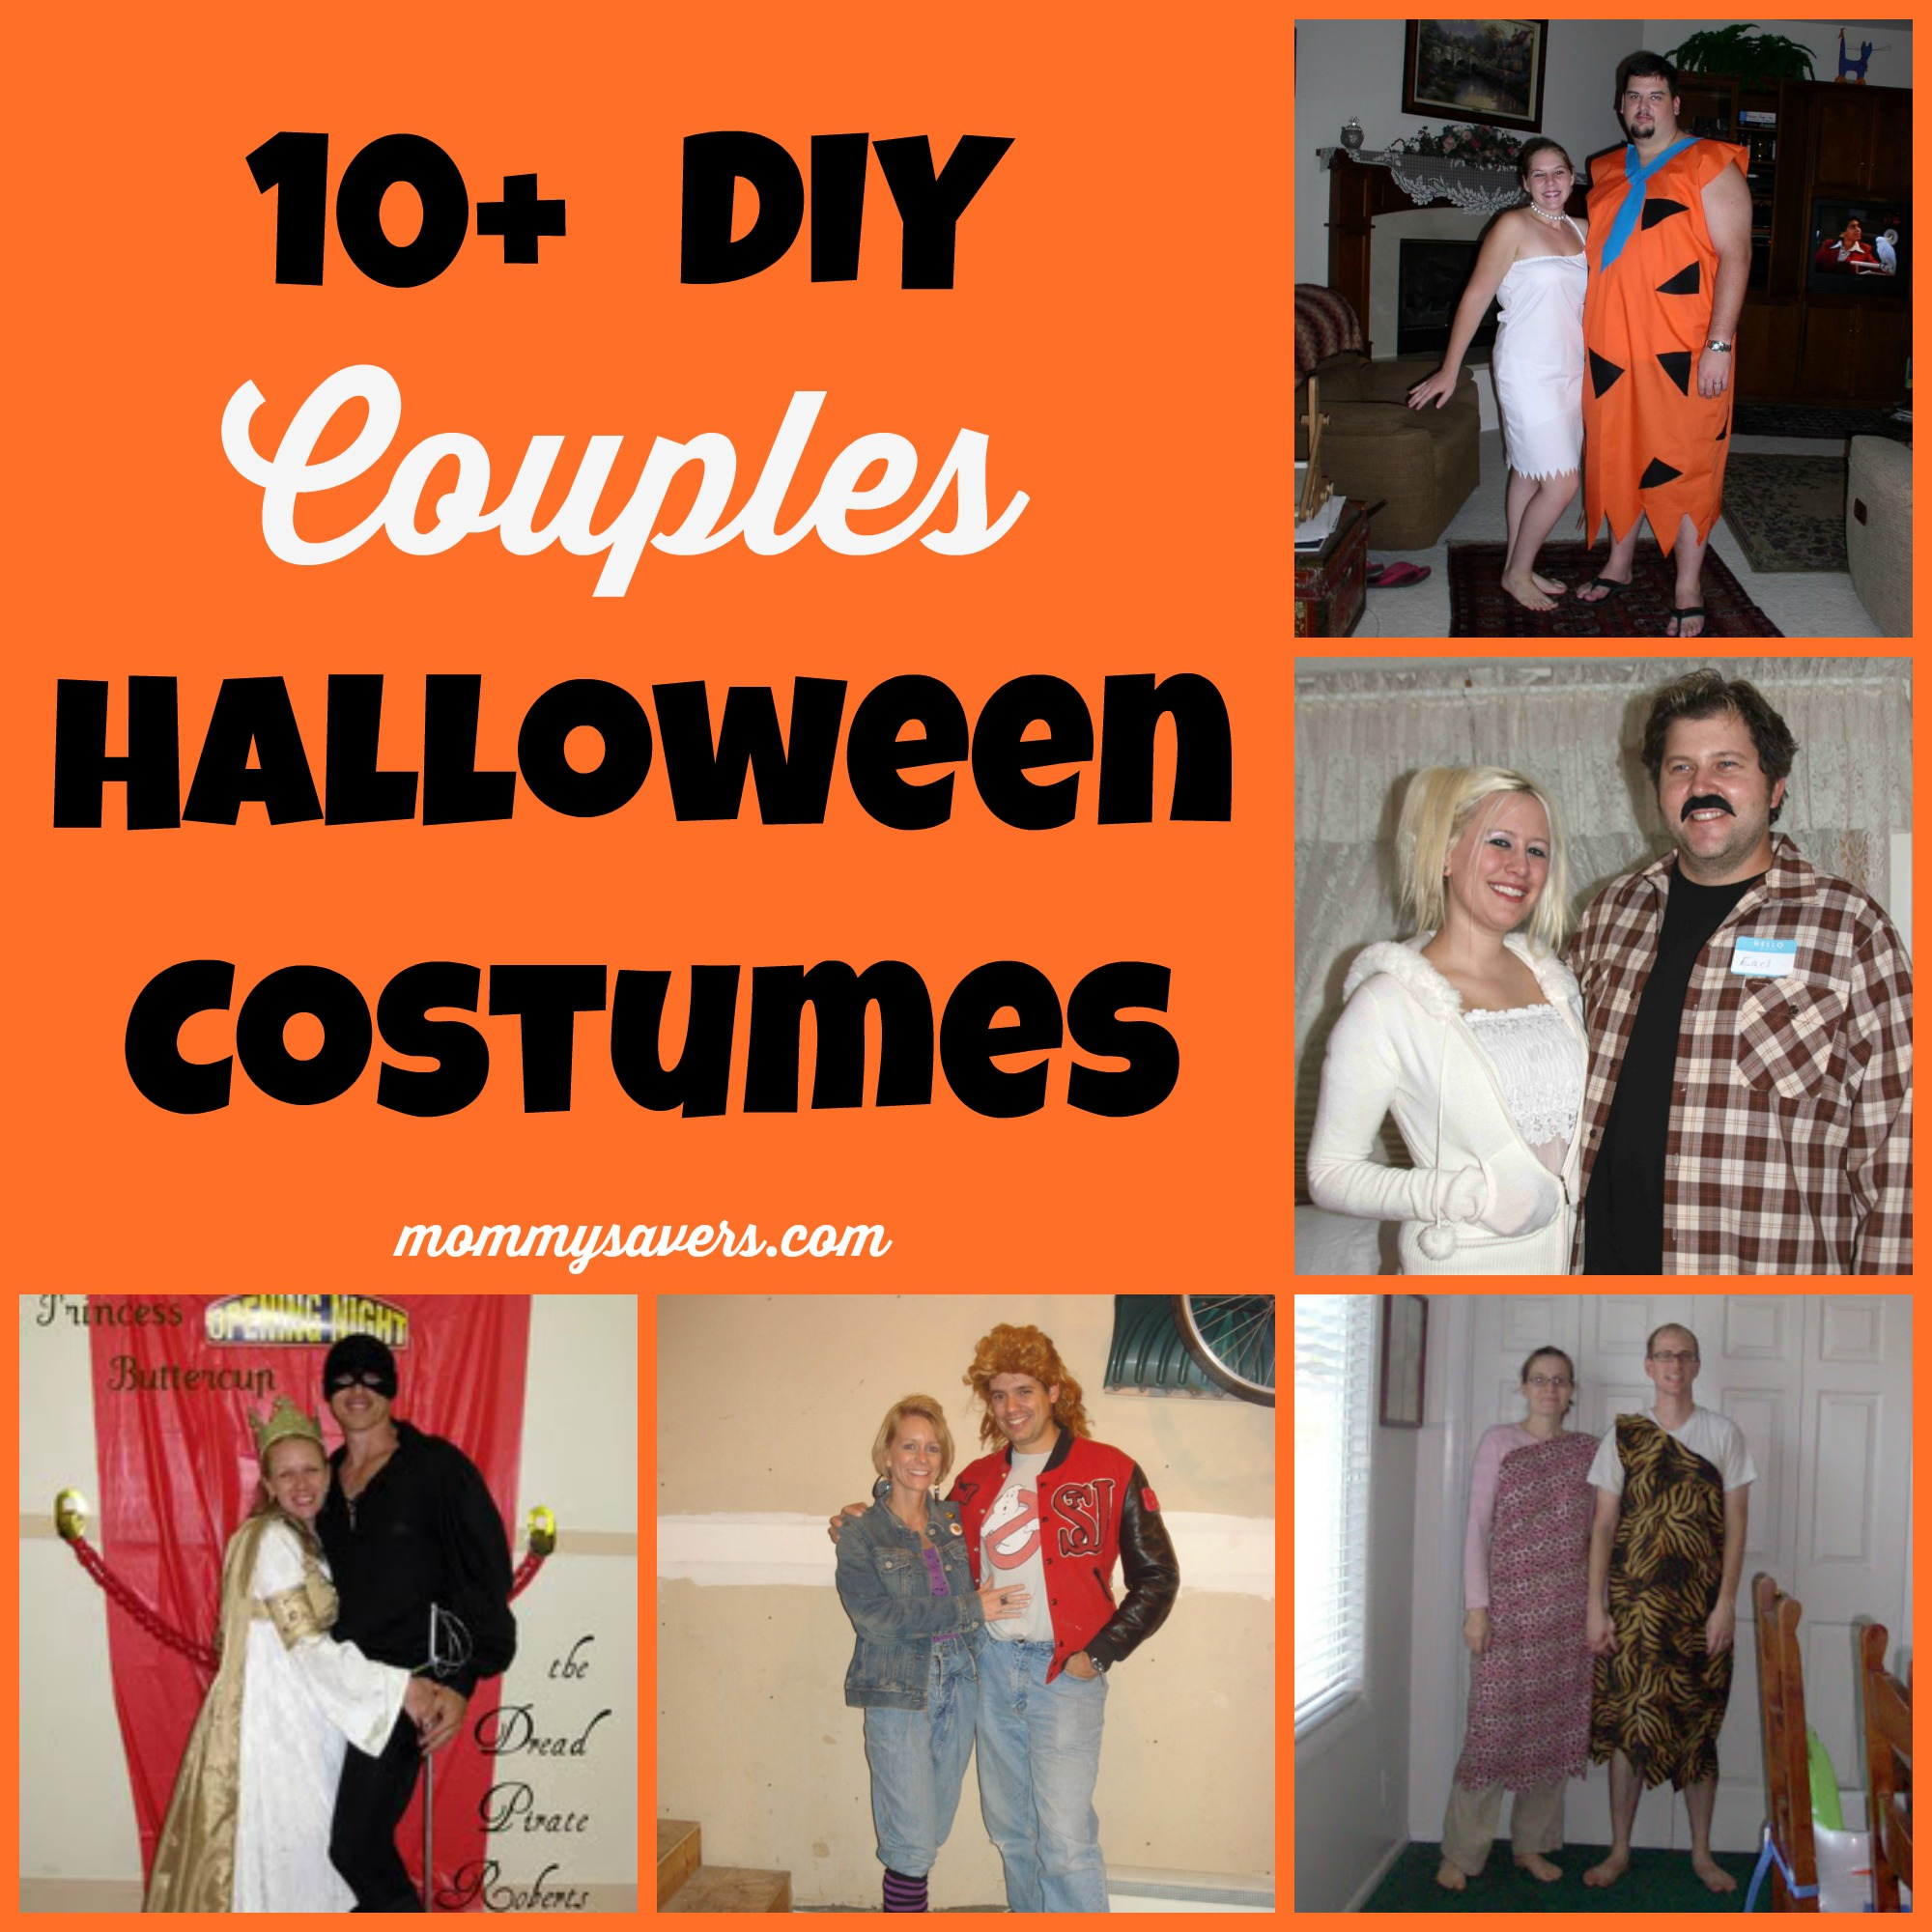 Diy couples halloween costumes 10 ideas mommysavers mommysavers diy couples halloween costumes solutioingenieria